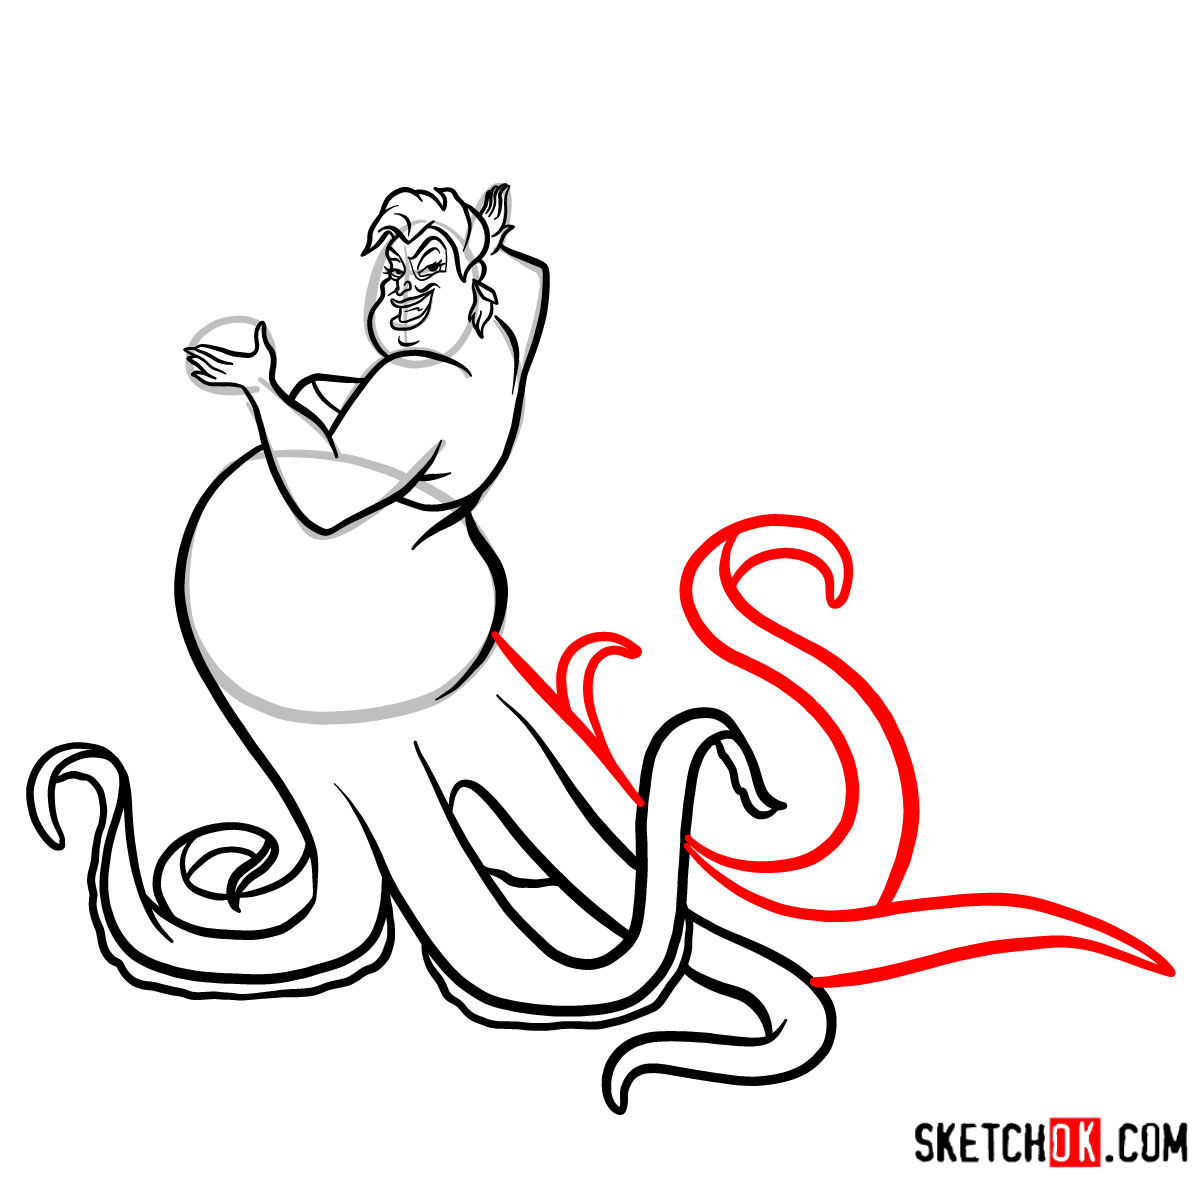 How to draw Ursula | The Little Mermaid - step 10